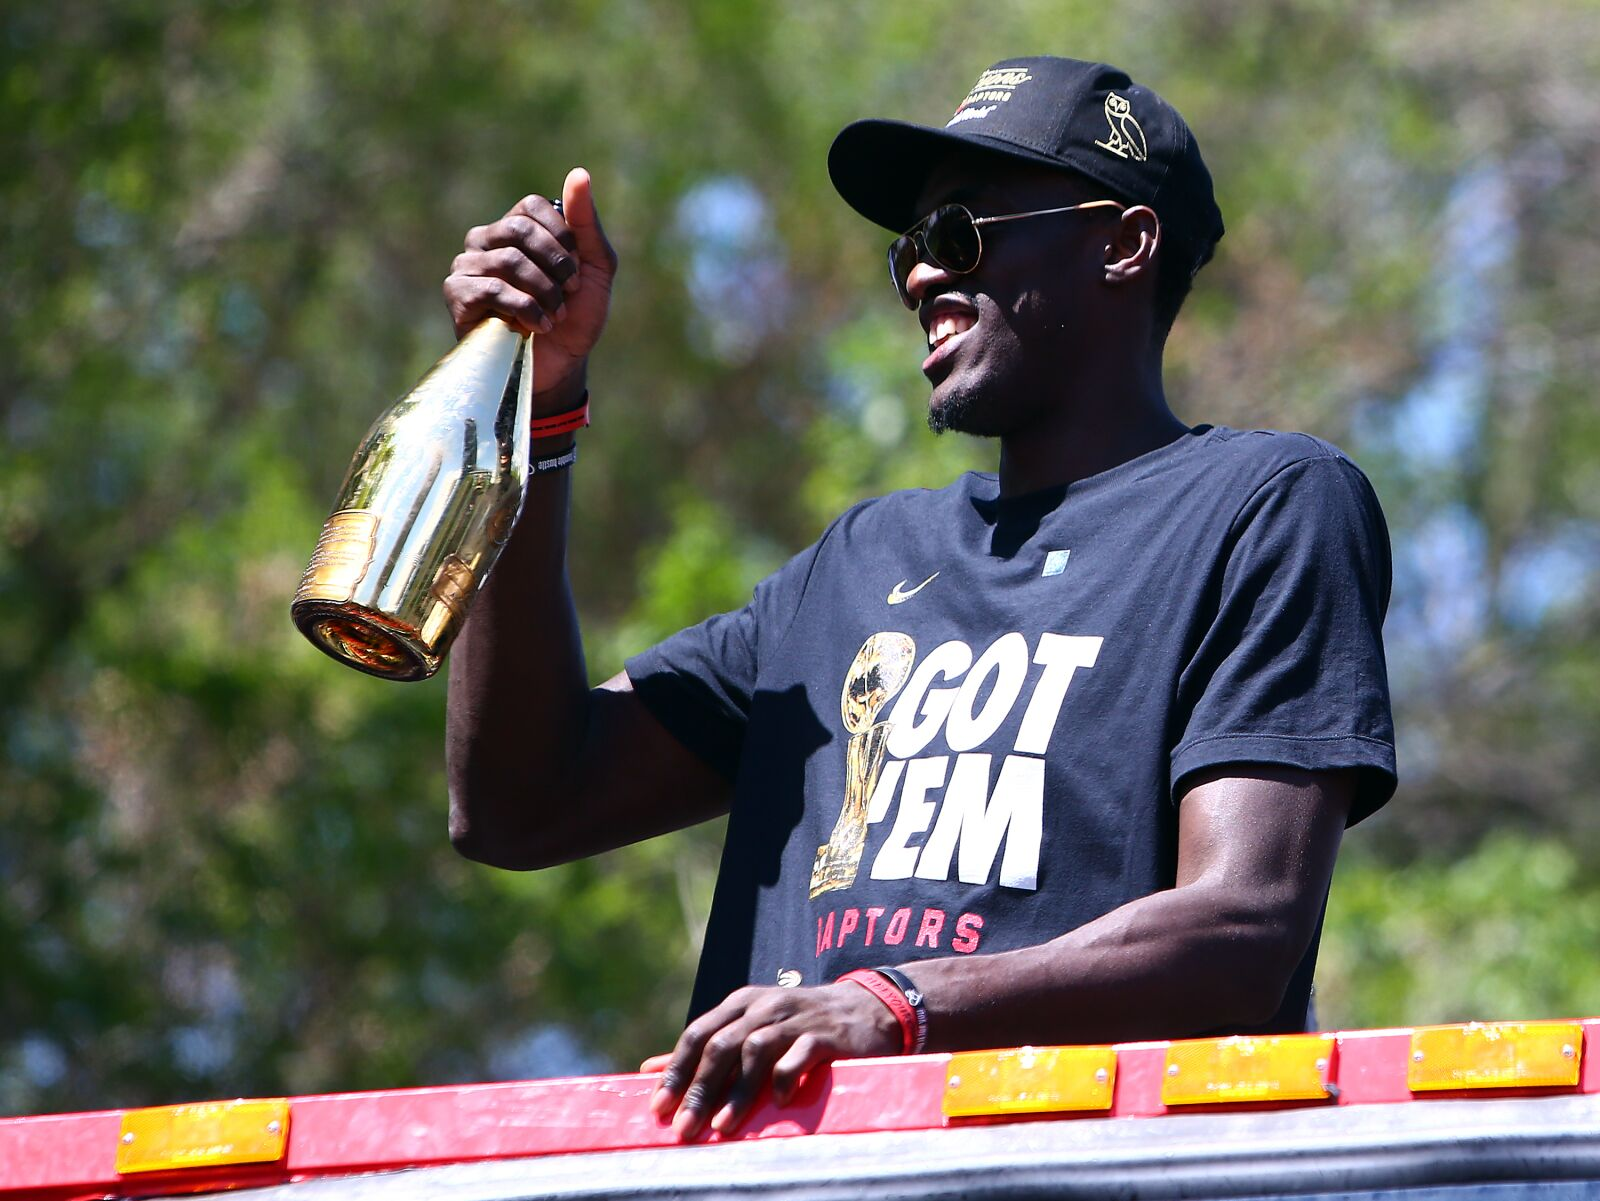 Toronto Raptors secure future with Pascal Siakam extension